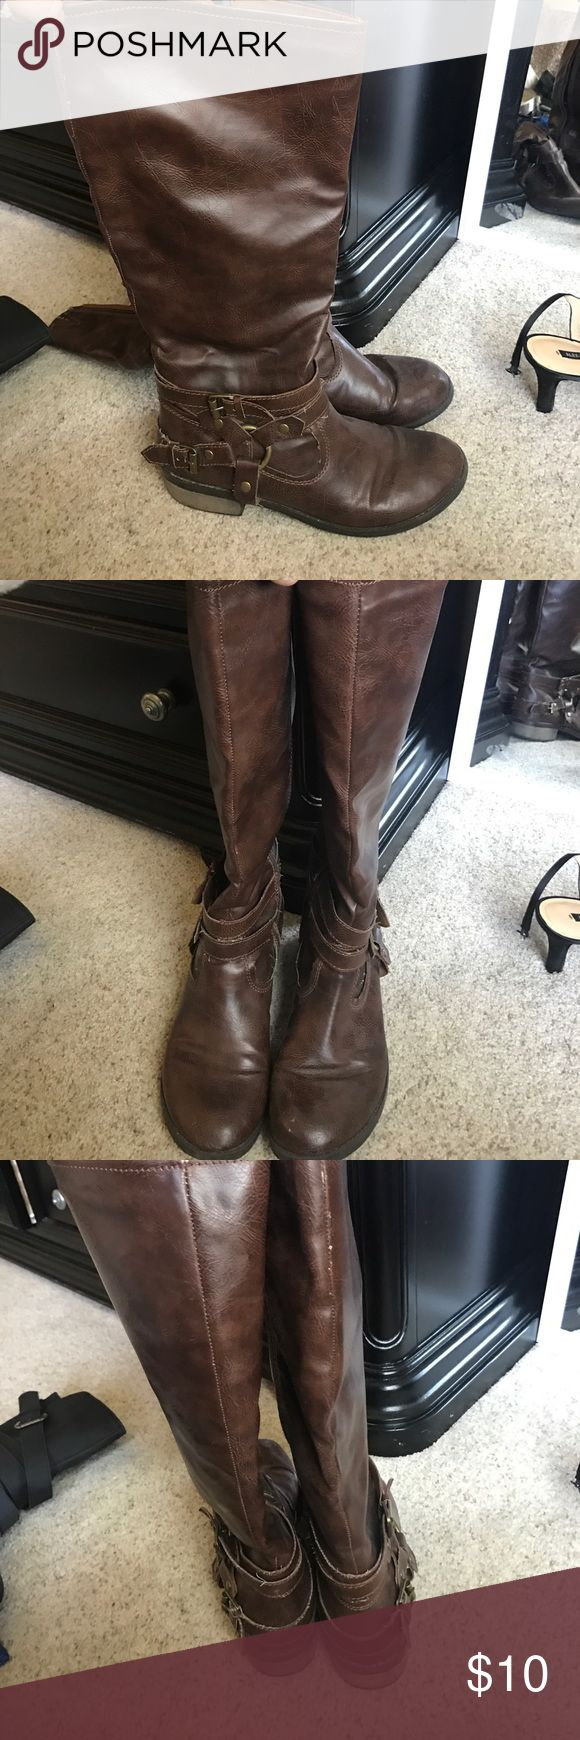 Tall Brown boots Slightly heeled tall brown boots, they fall right below the knee. Super cute with jeans! Shoes Heeled Boots